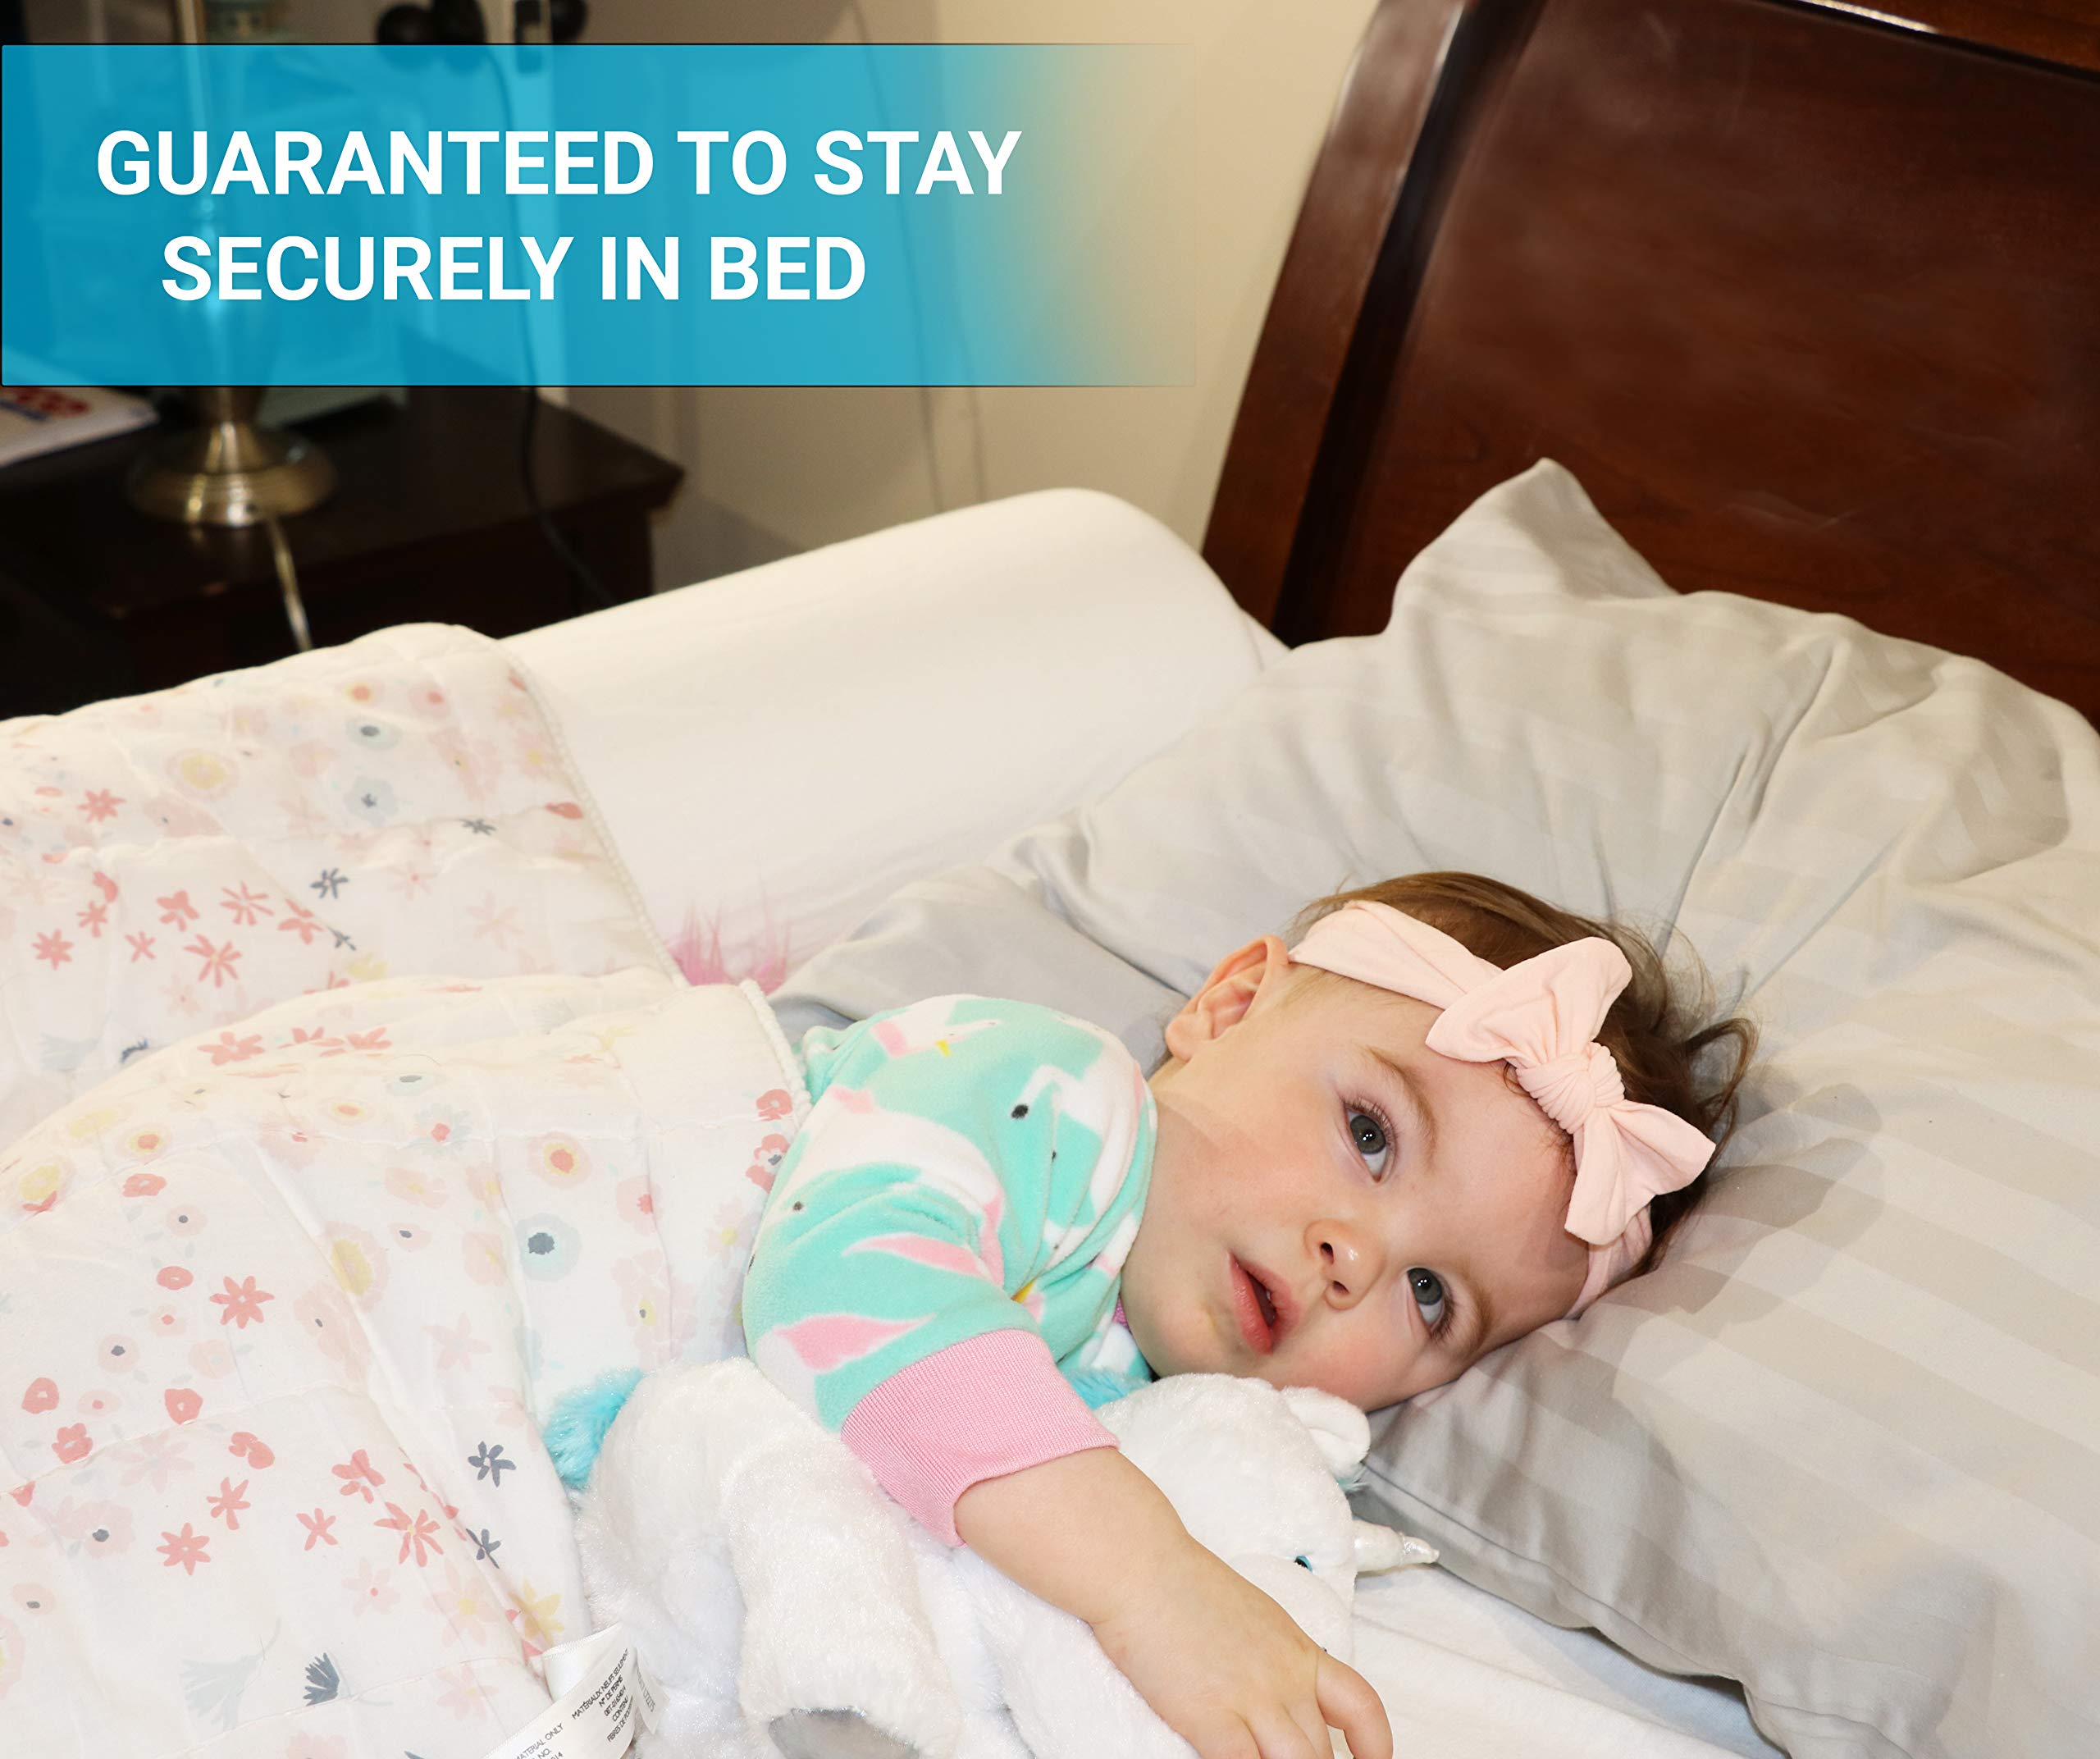 Toddler Bed Rail Bumper Foam Bed Edge for Toddlers - Premium Kids Bed Bumper - Bed Edge Safety Guard - Bunk Rail for Kids - Baby Bumper - Comfortable & Durable - Waterproof & Washable Cover Included